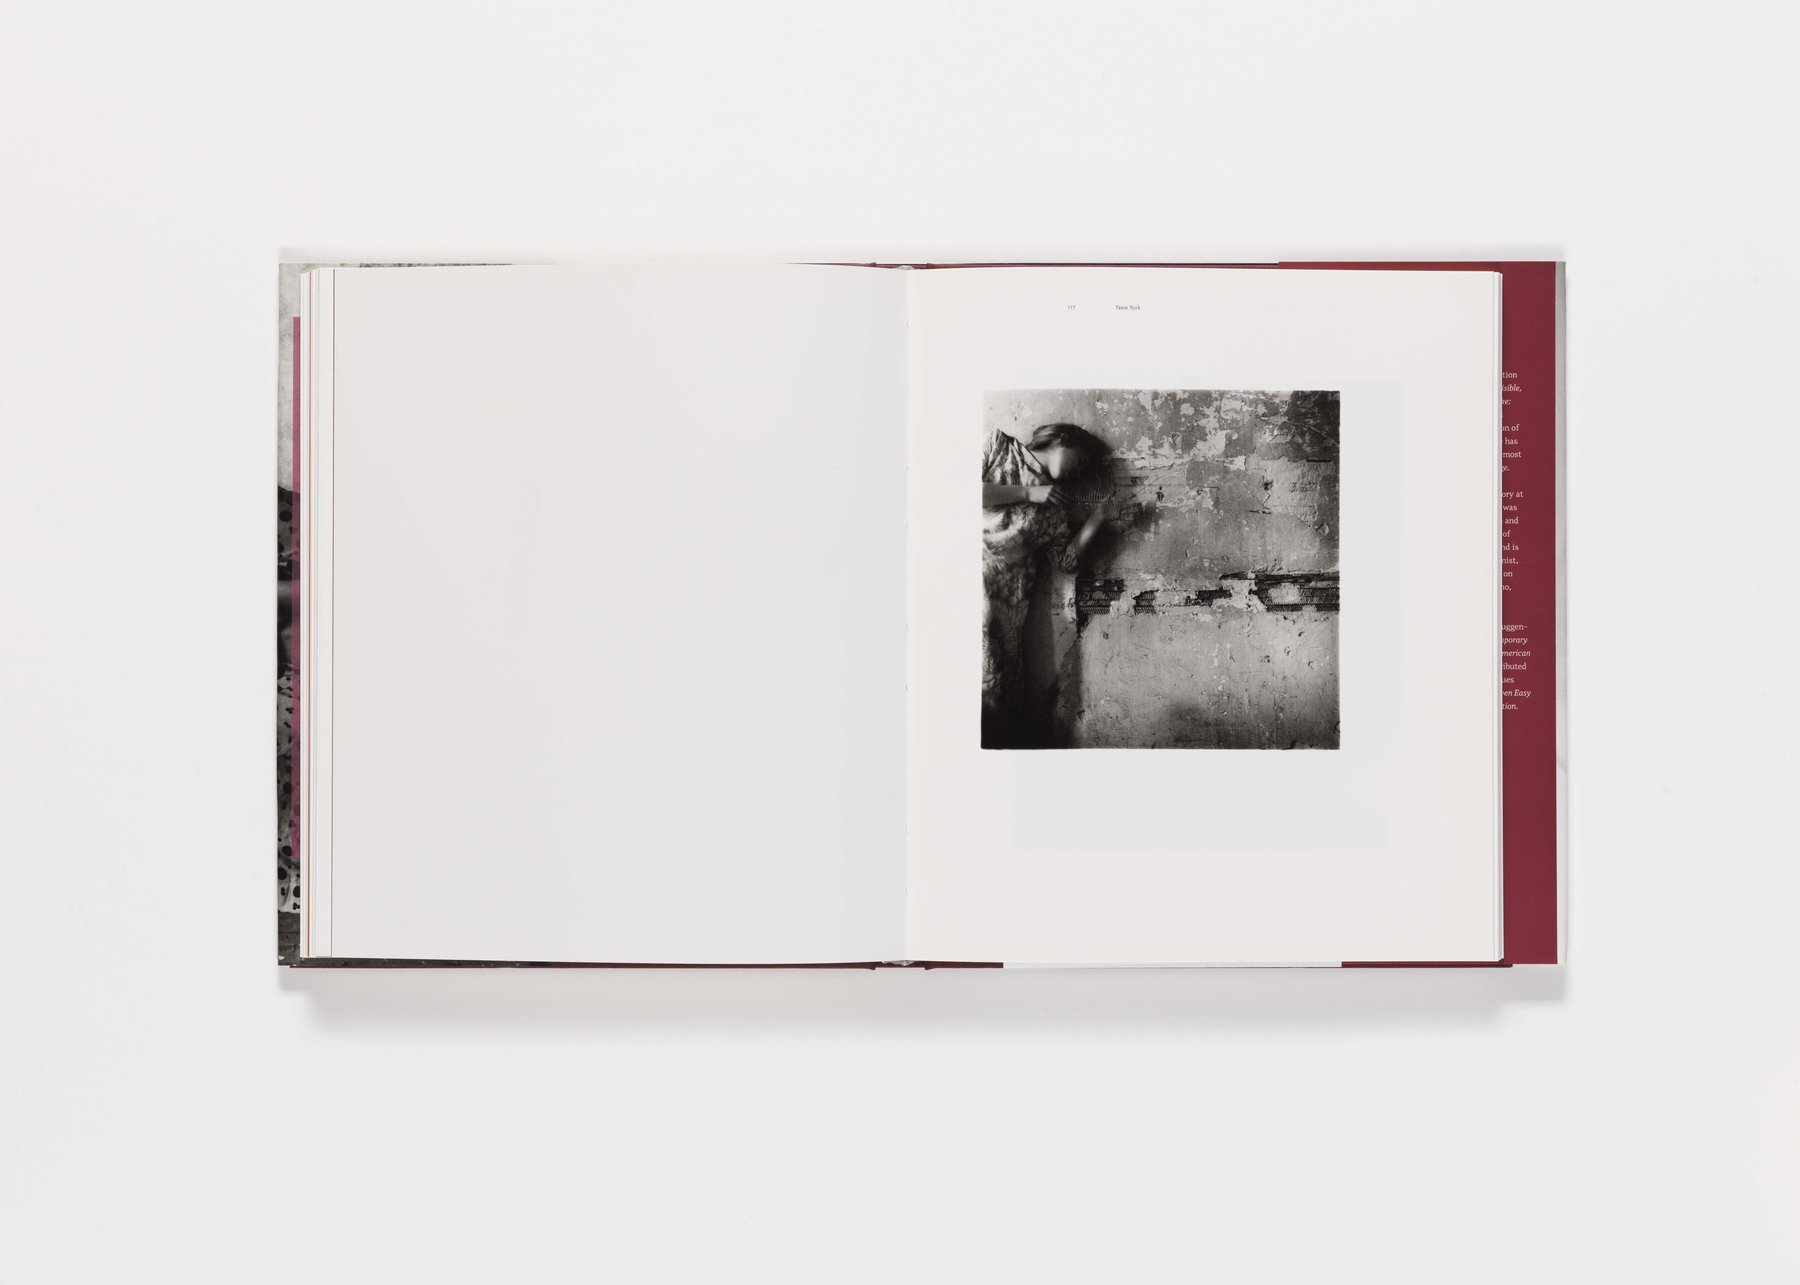 Francesca Woodman publication pages 116-117